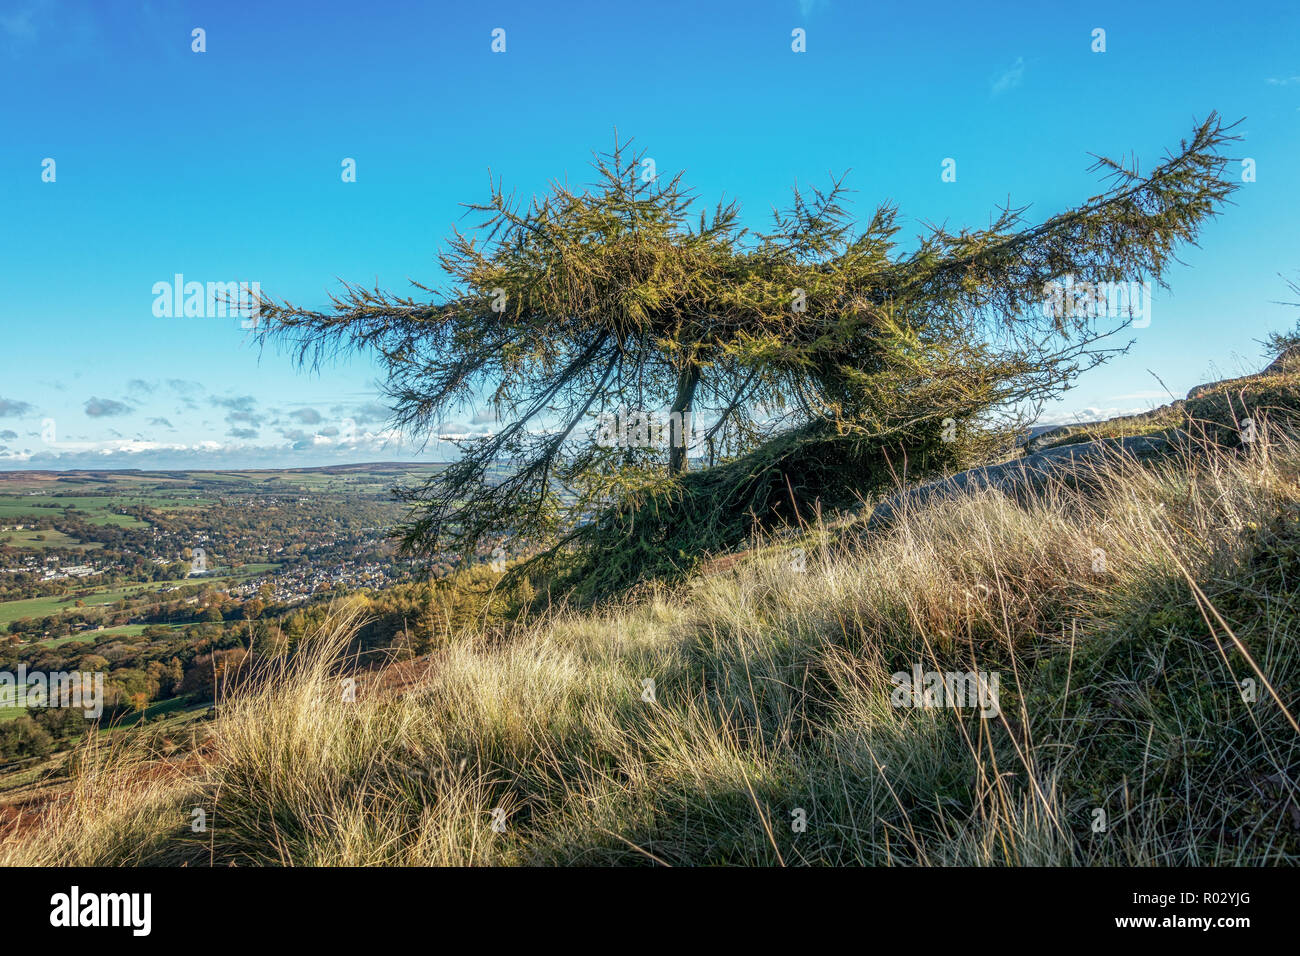 Single larch tree in autumn colours on Ilkley moor with Ilkley town below, West Yorkshire, UK - Stock Image